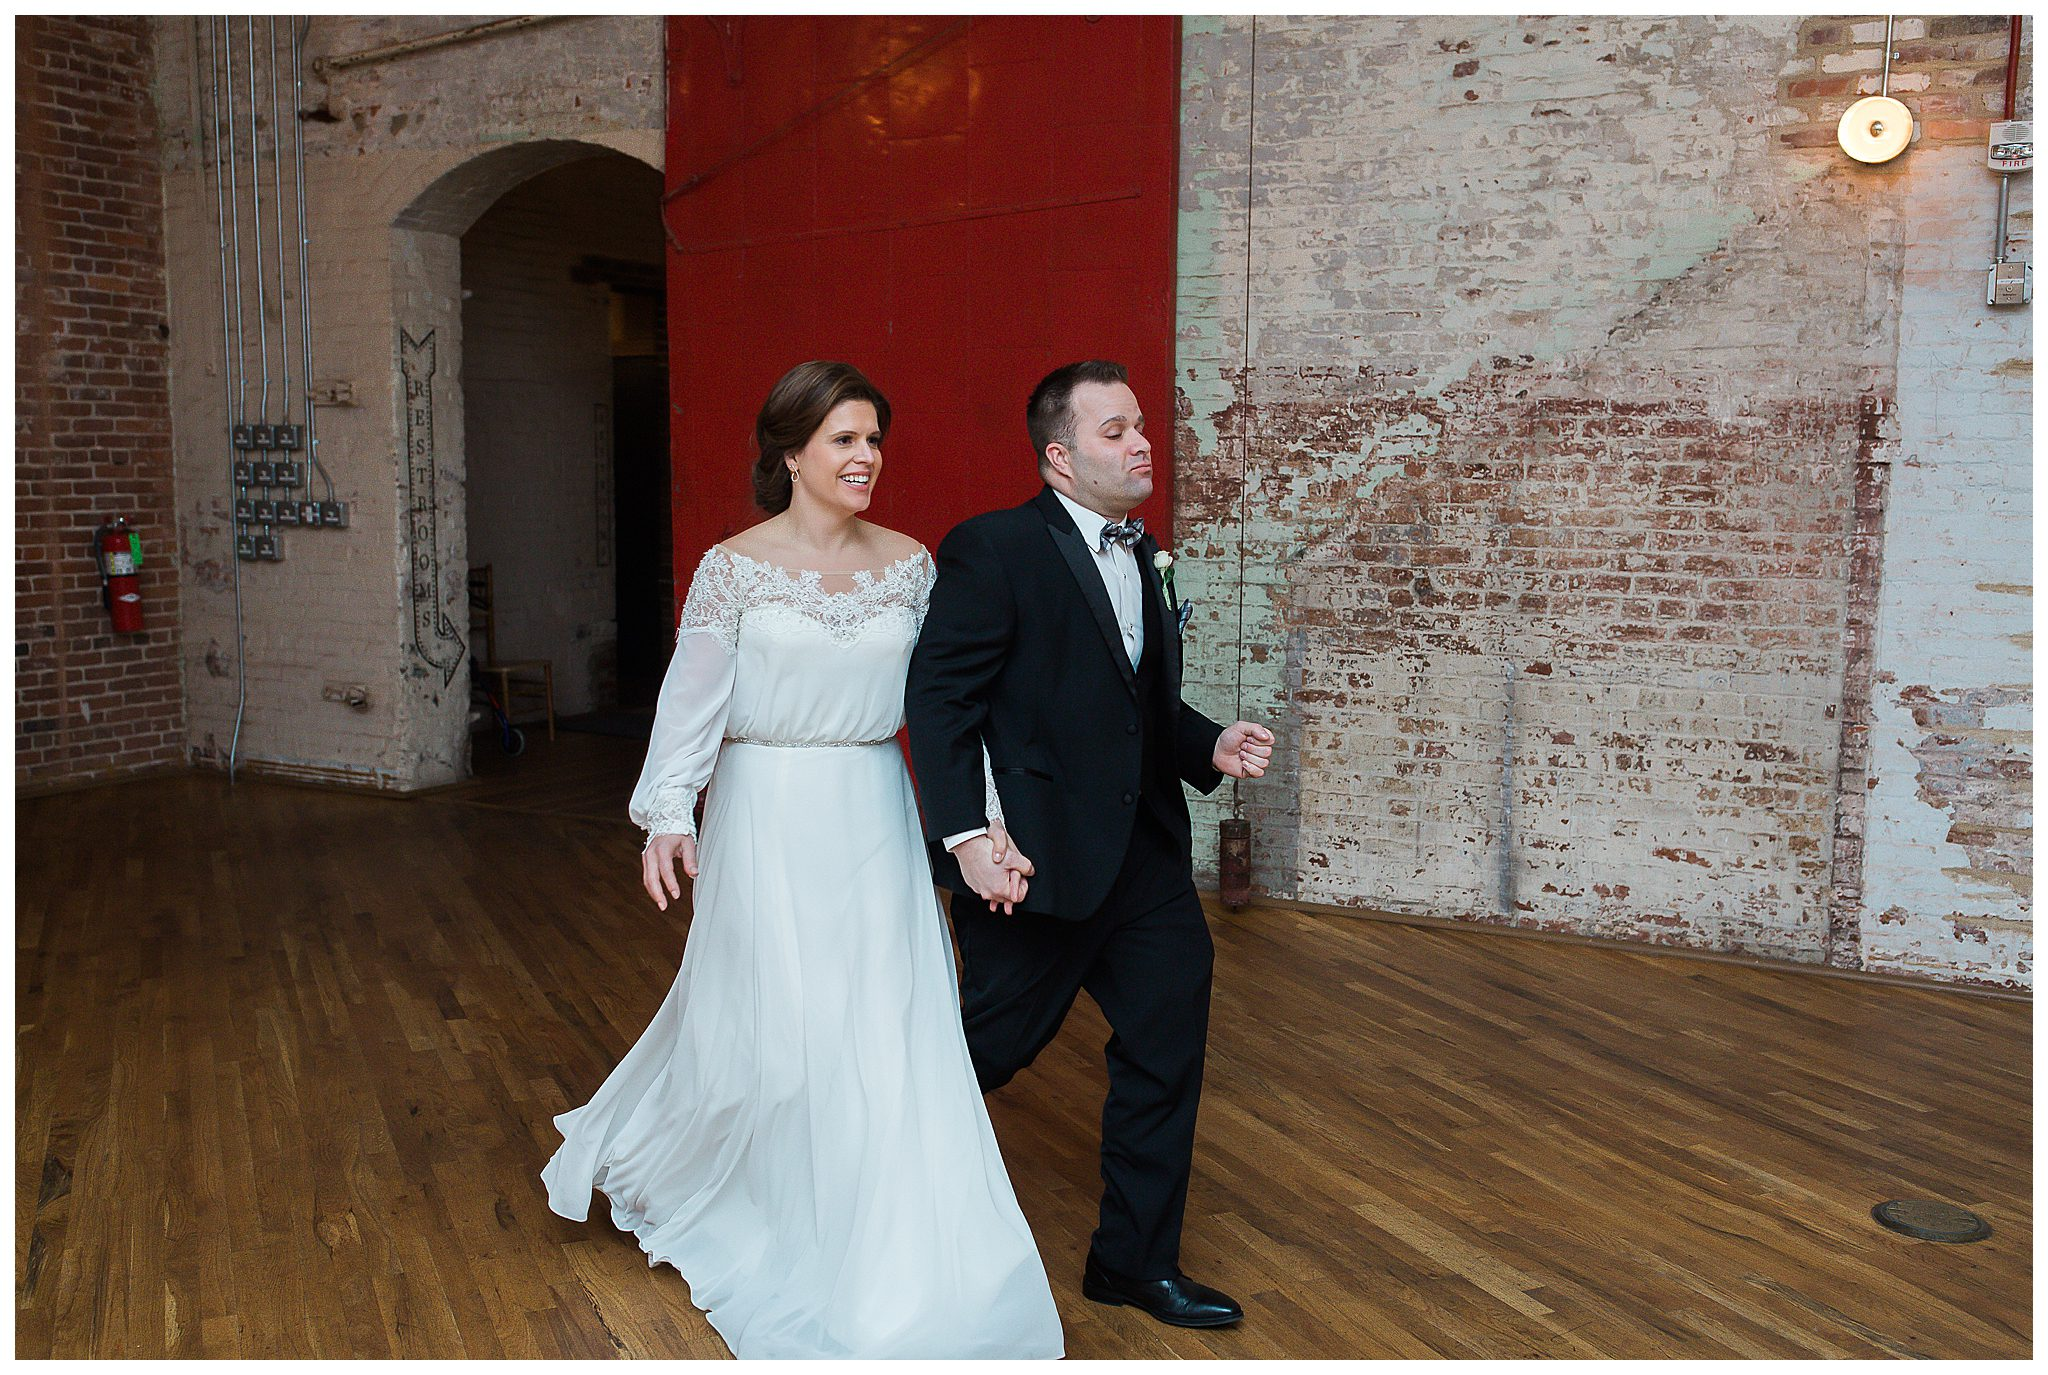 Couple introduction near red door at The Cedar Room Charleston SC